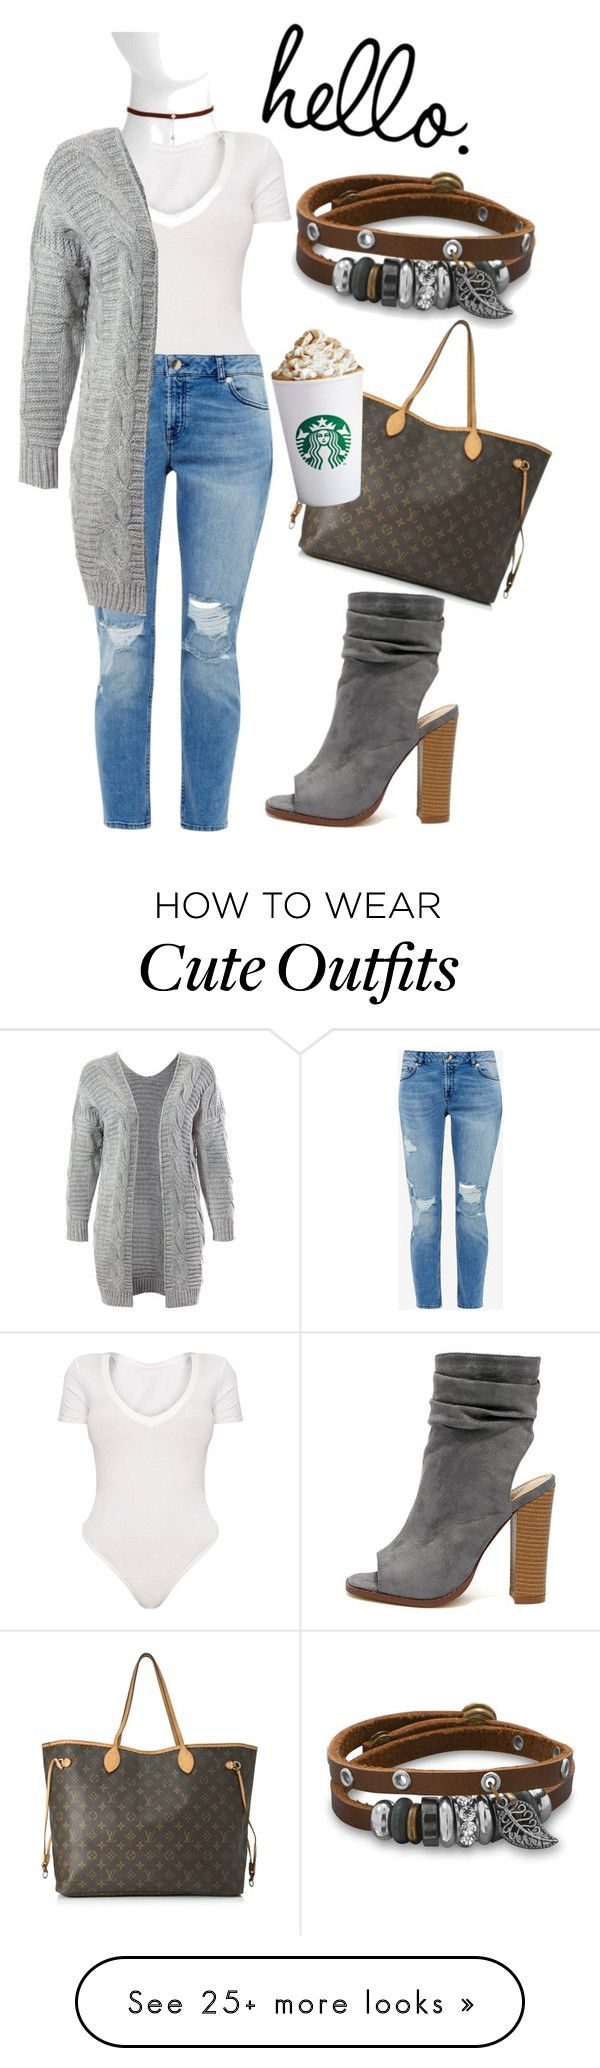 """Cute Winter Fashion Outfit"" by frances-mcgee on Polyvore featuring Ted Baker, Nashelle, Sans Souci, Liliana, BillyTheTree and Louis Vuitton"